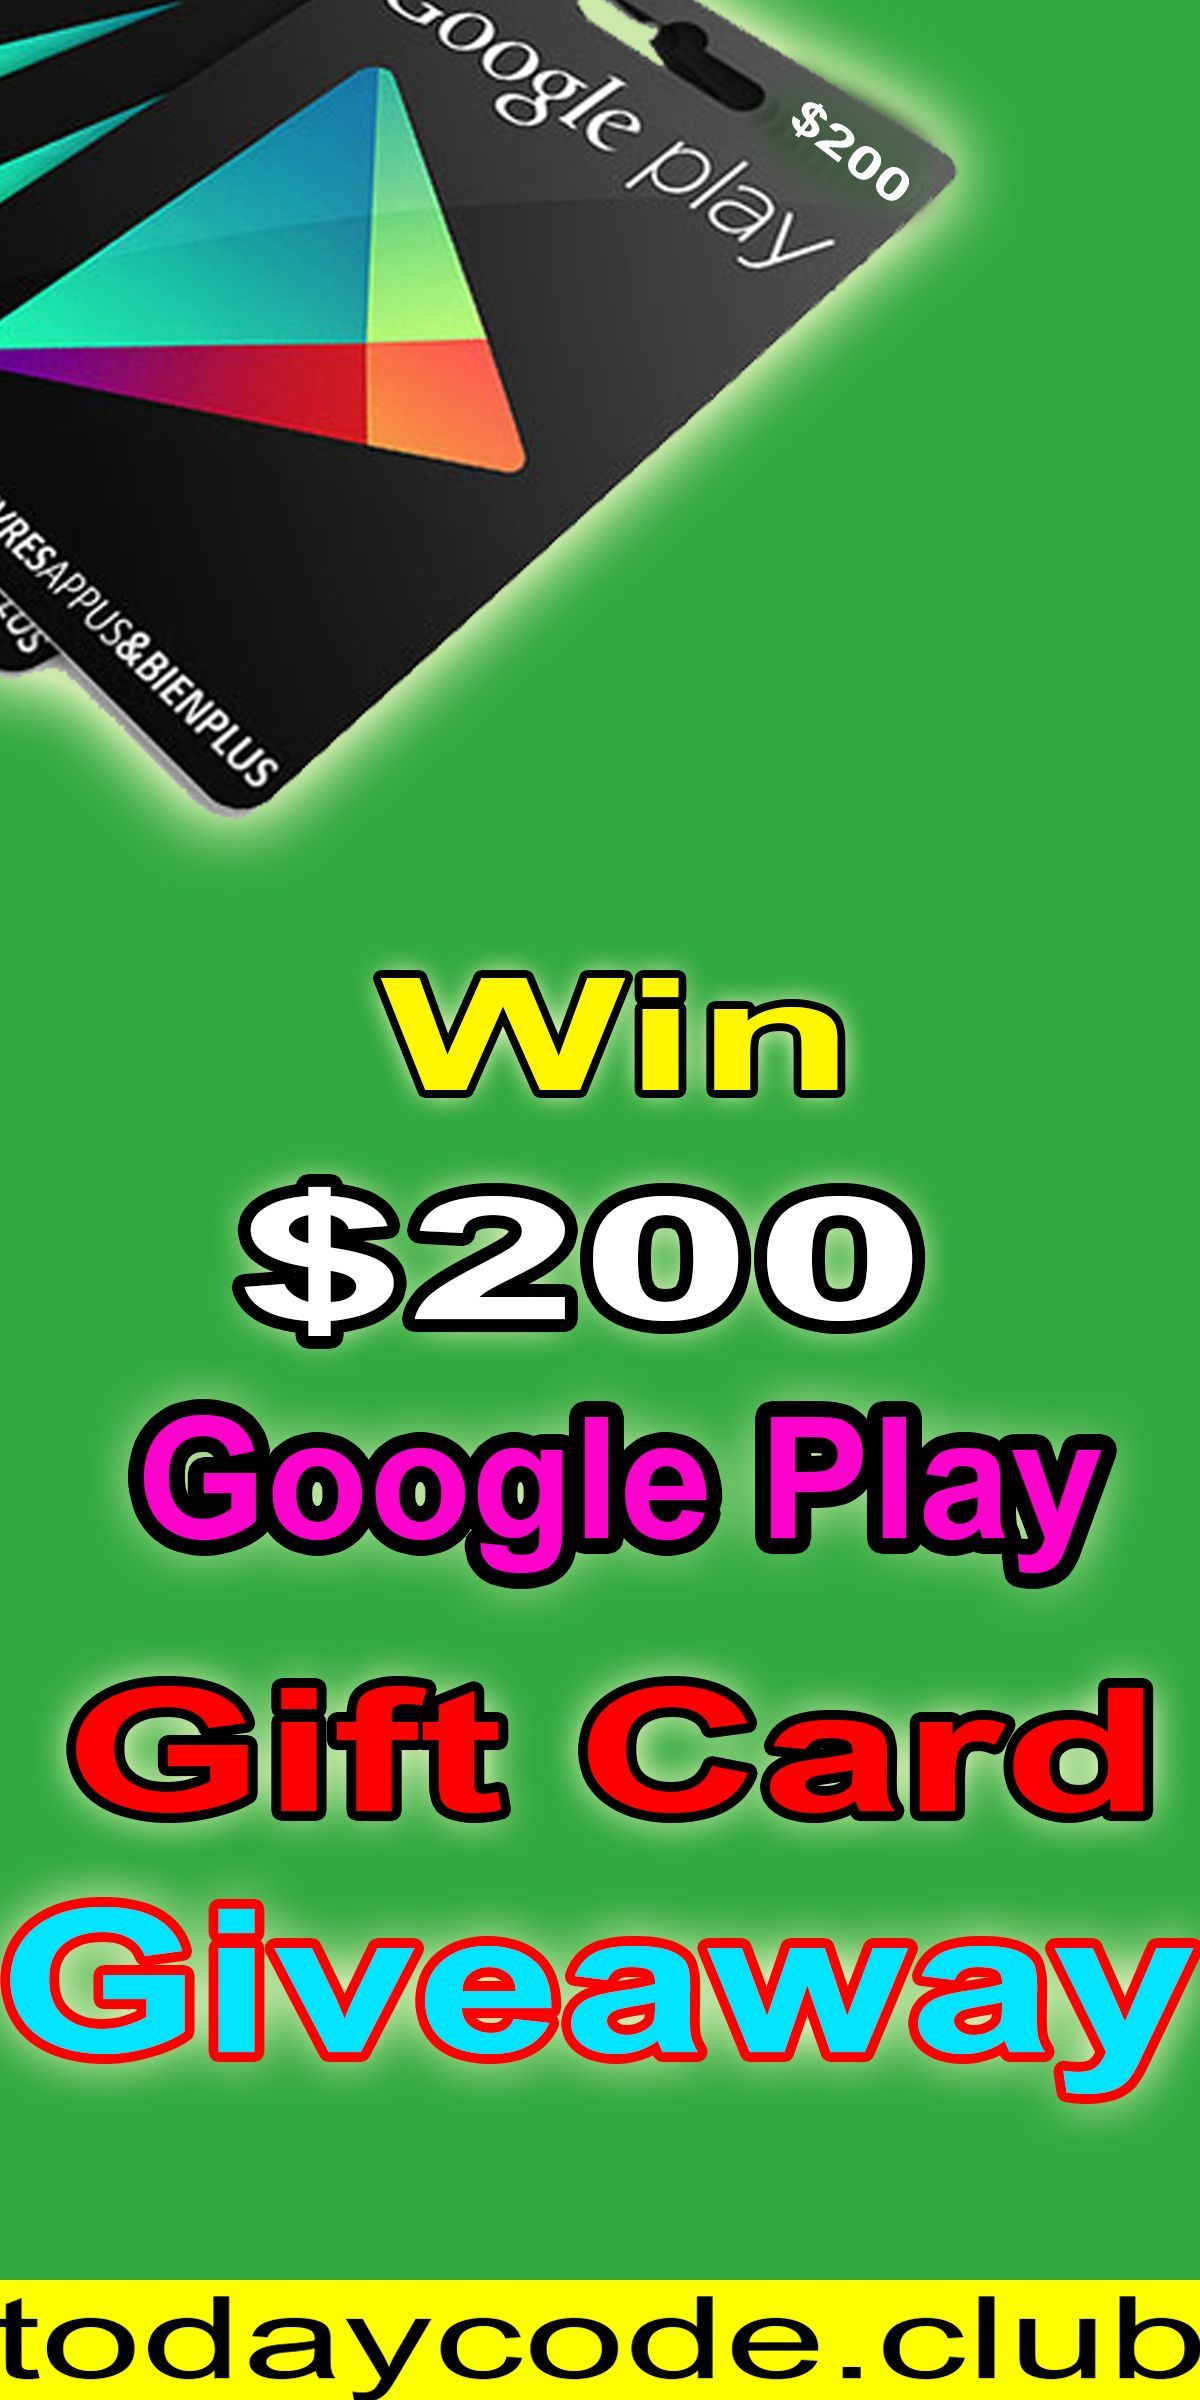 Google Play Gift Card Giveaway Get A Google Play Gift Card